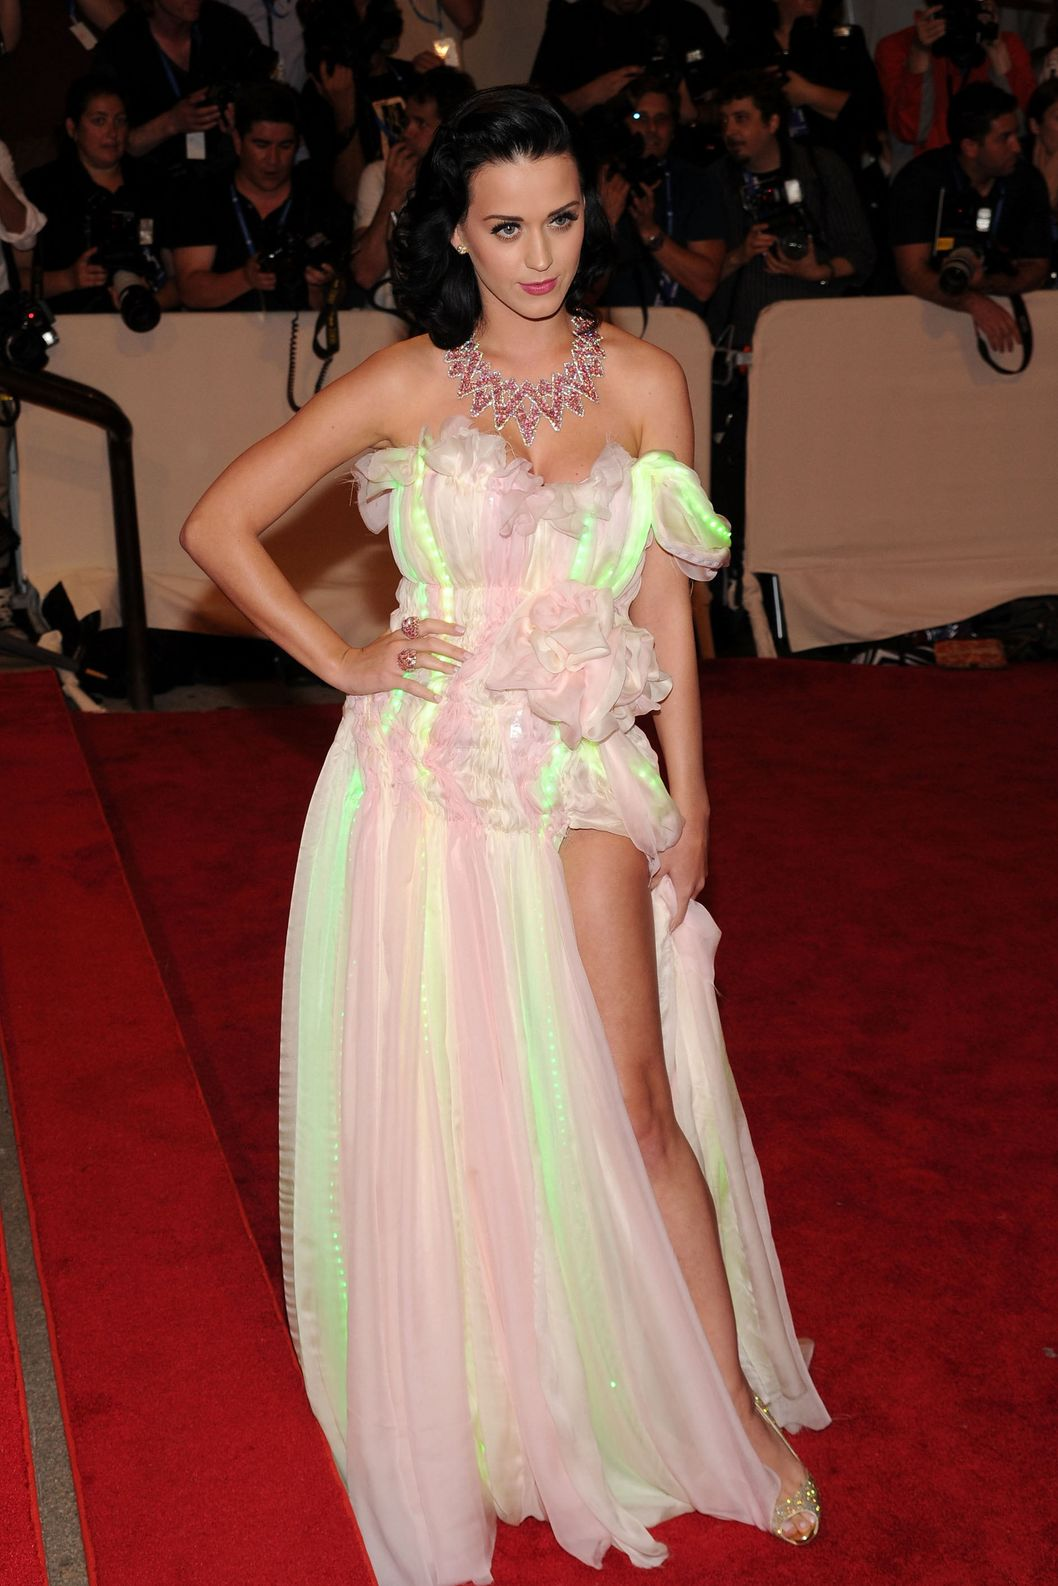 NEW YORK - MAY 03:  Singer Katy Perry attends the Metropolitan Museum of Art's 2010 Costume Institute Ball at The Metropolitan Museum of Art on May 3, 2010 in New York City.  (Photo by Bryan Bedder/WireImage for Vogue)